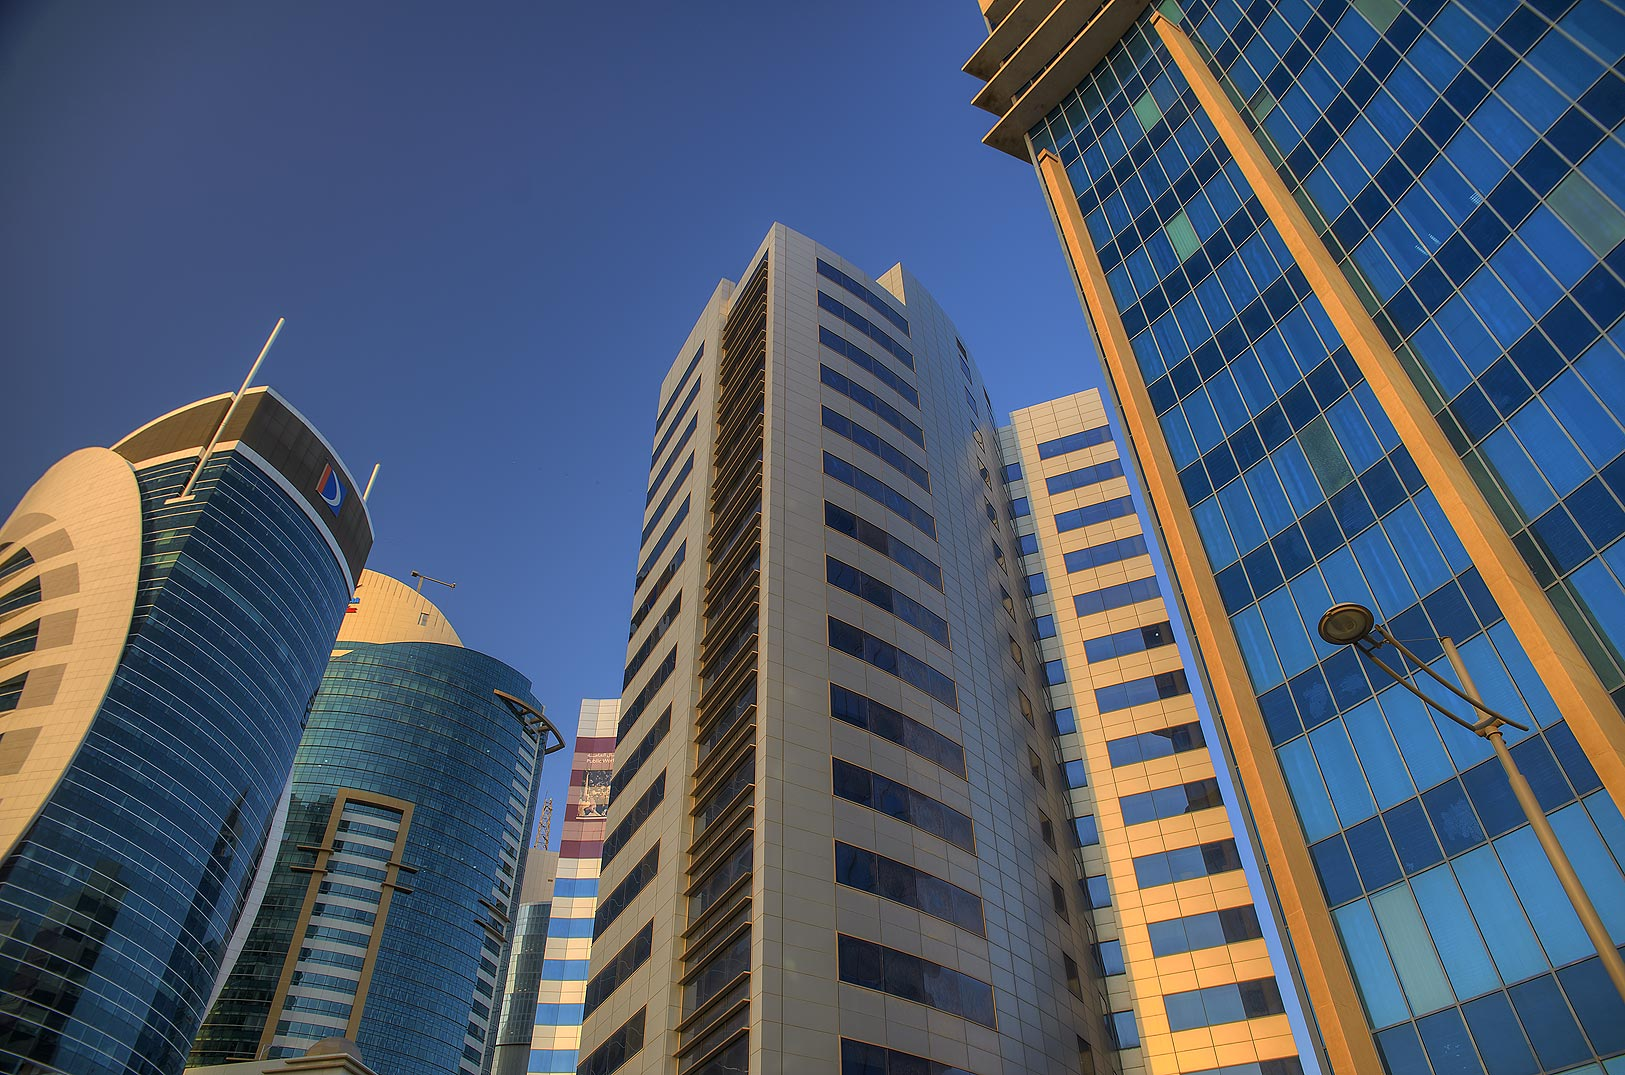 Nakheel, Kahramaa and Doha Bank towers in West Bay. Doha, Qatar